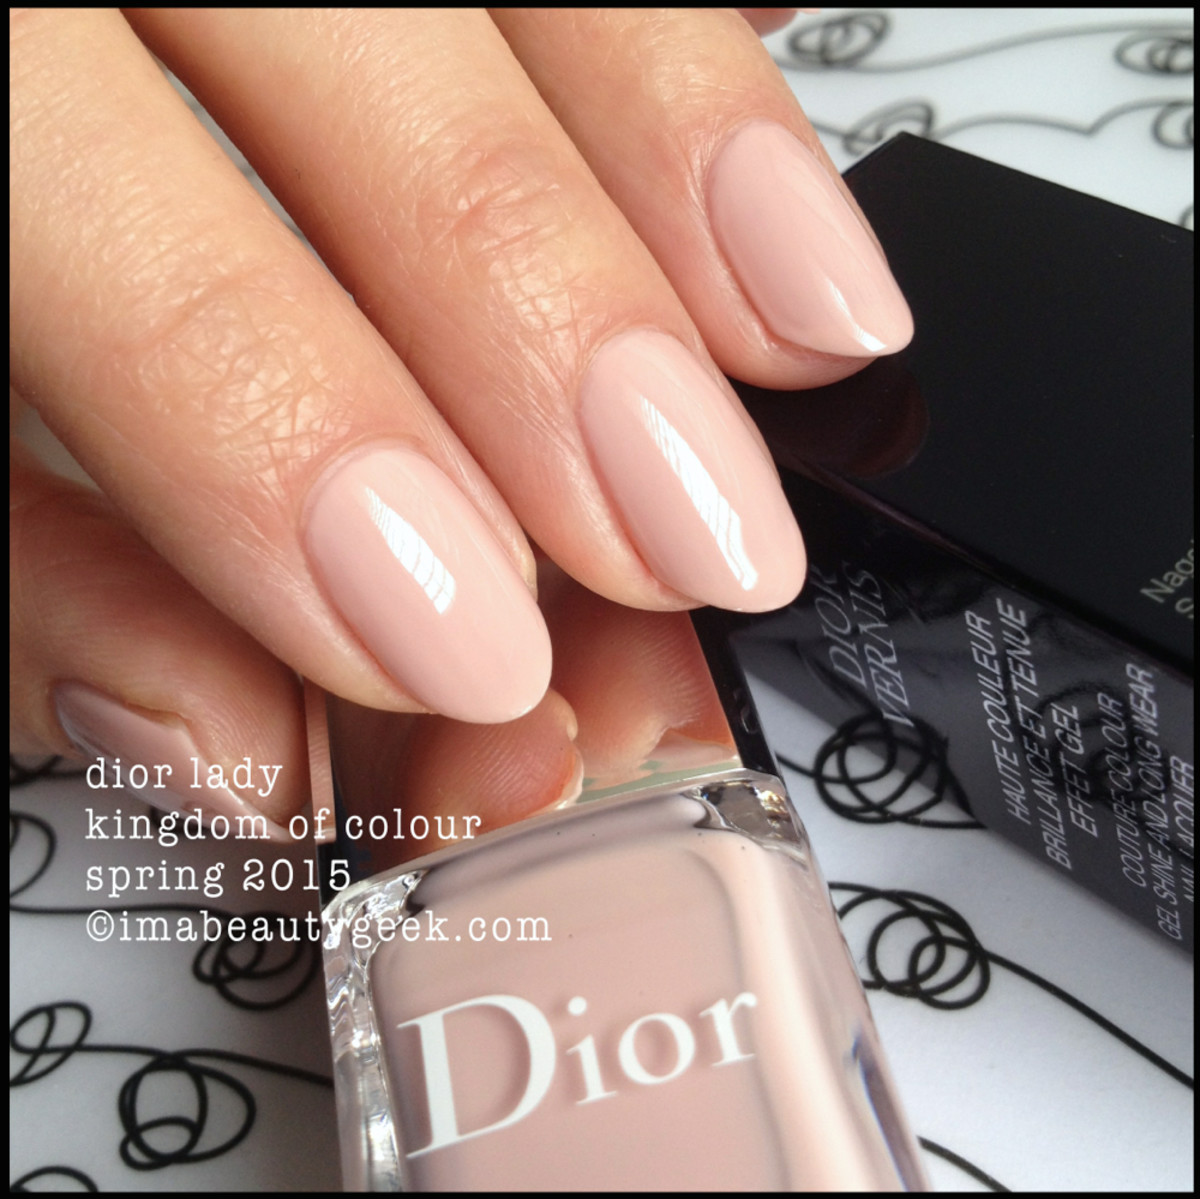 Dior Lady Kingdom of Colour Spring 2015